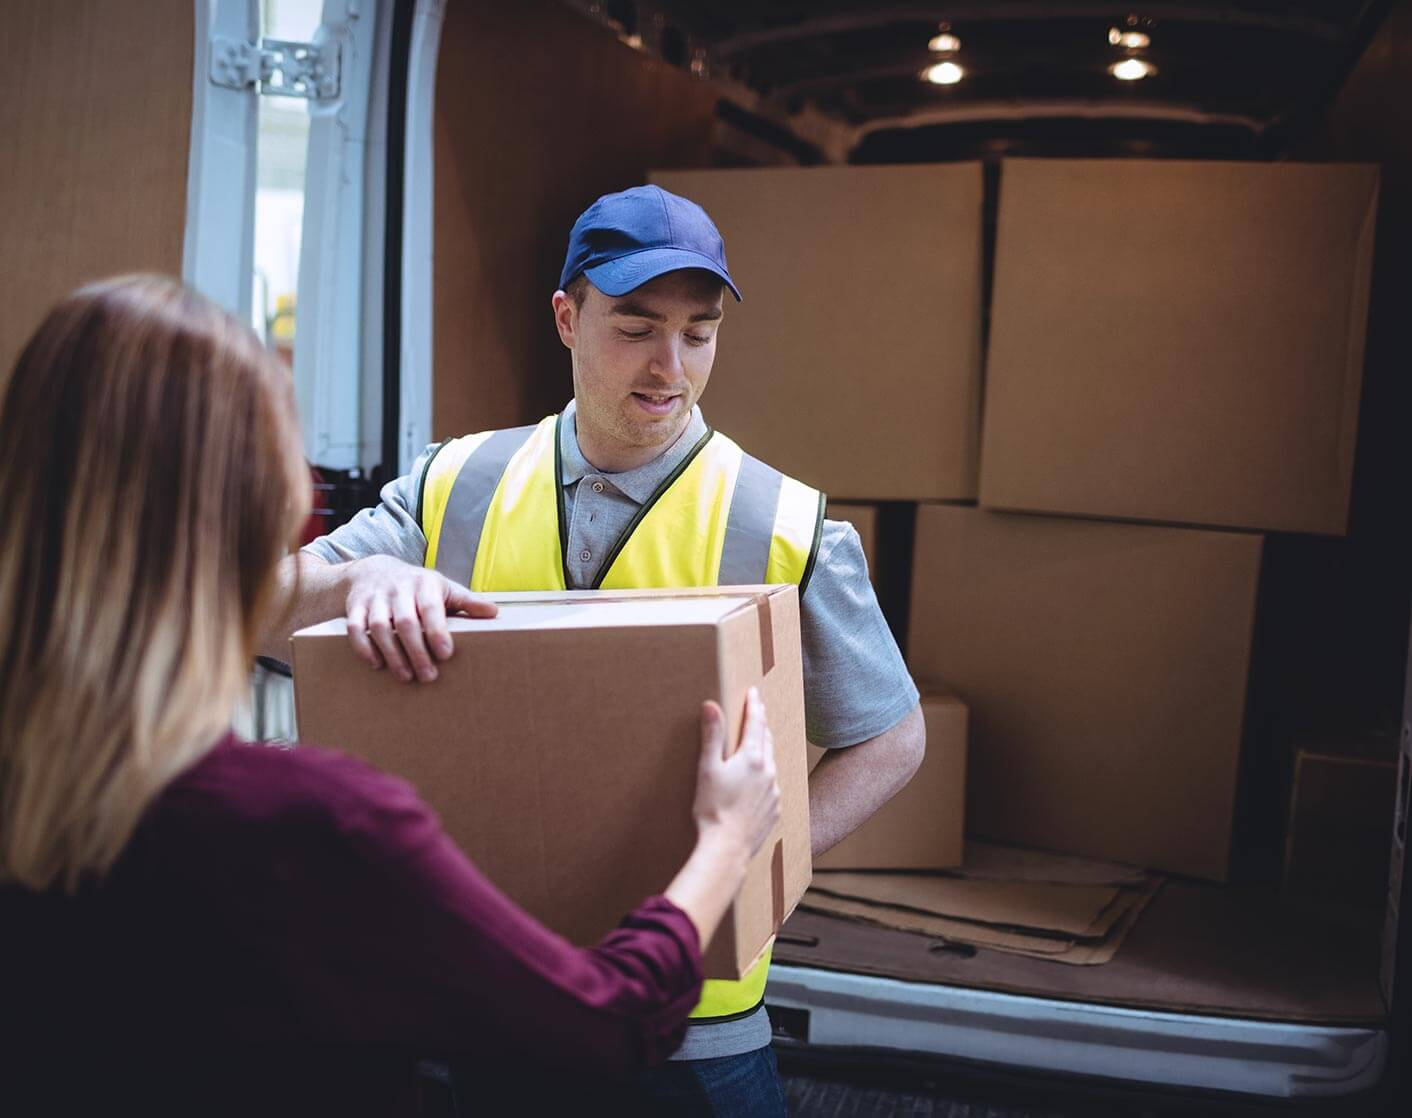 Male courier delivering package to blonde woman out of a delivery truck